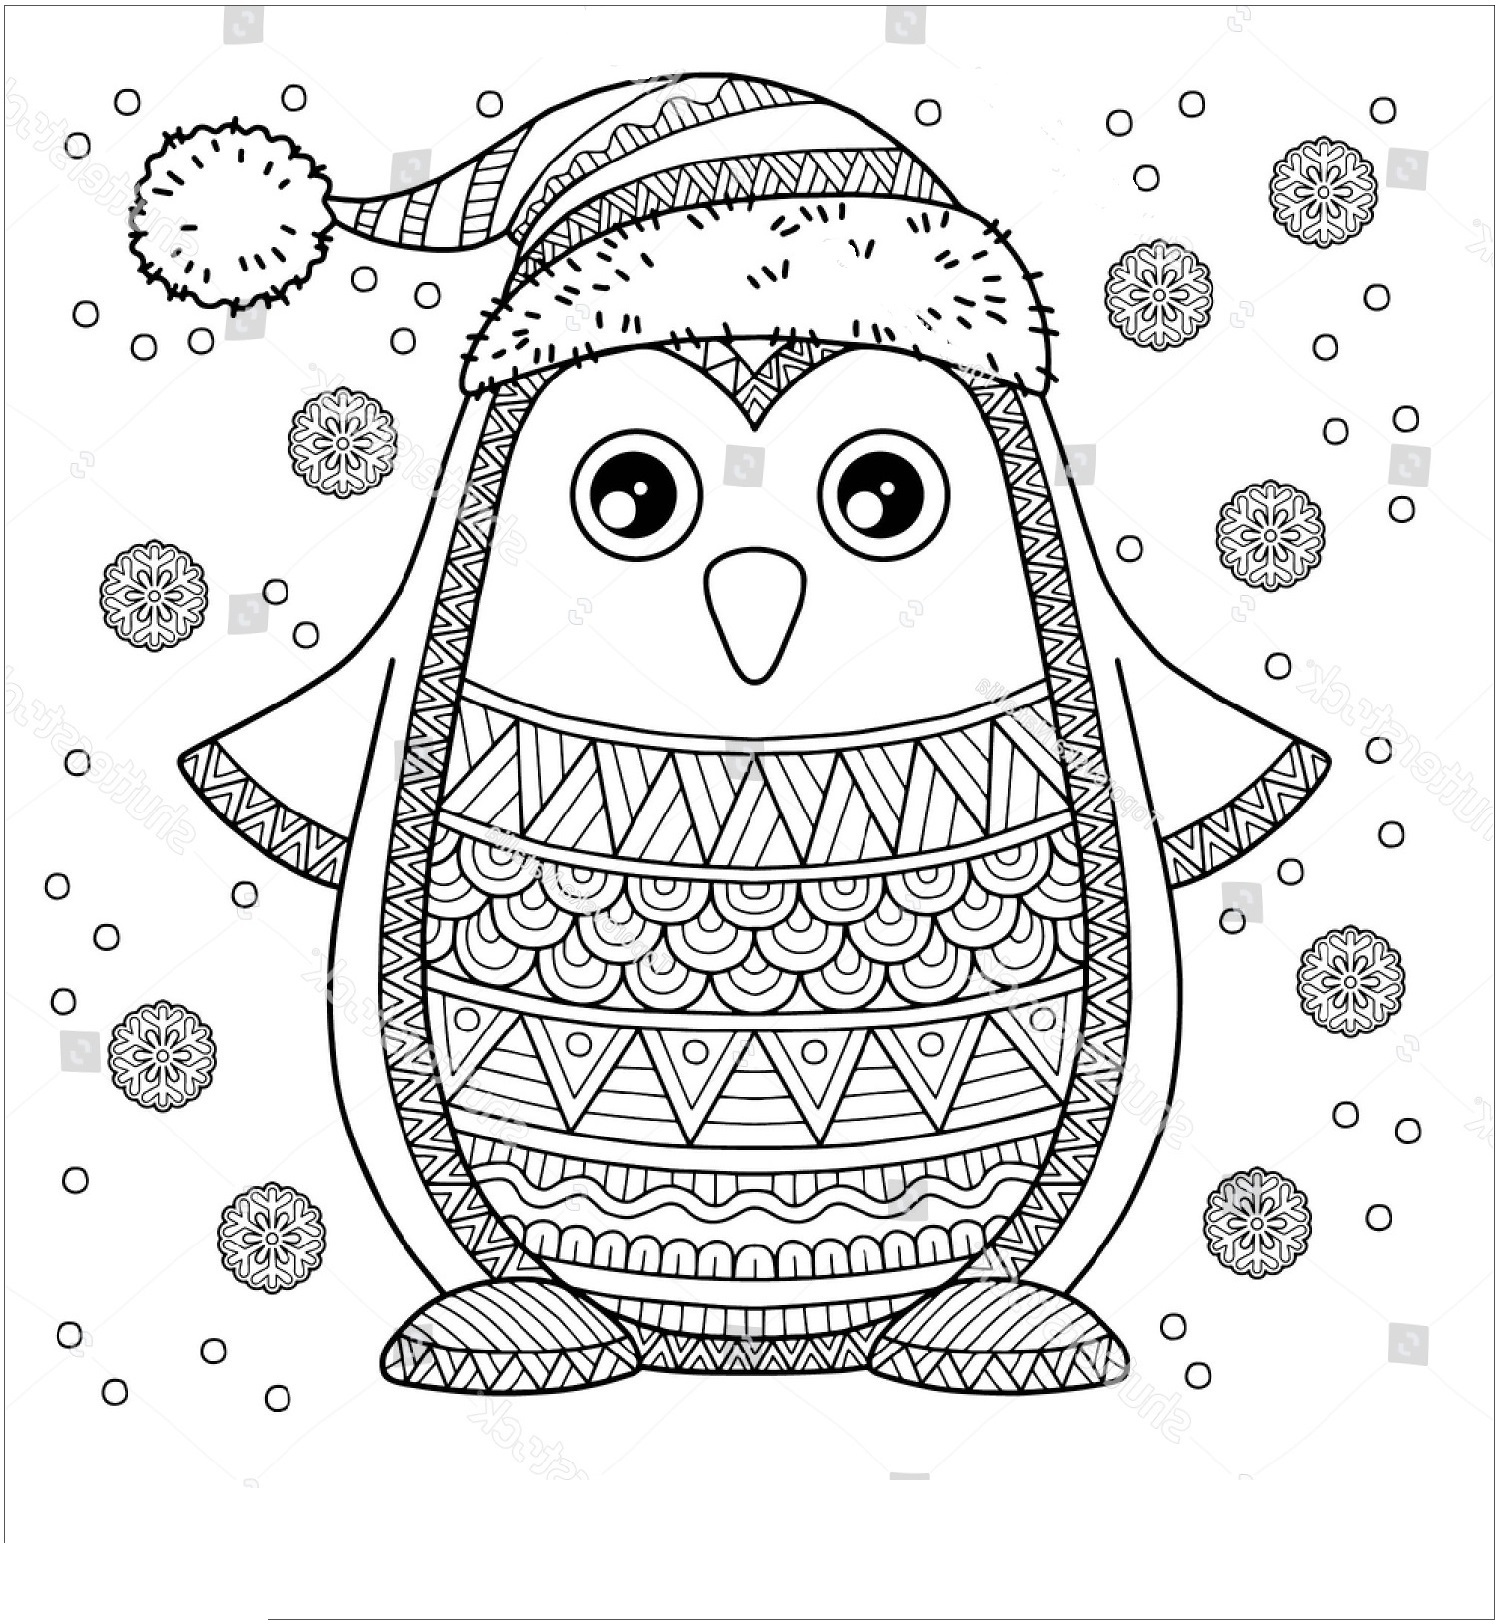 coloring pages of cute things don39t eat the paste strawberry rhubarb coloring page coloring of things pages cute